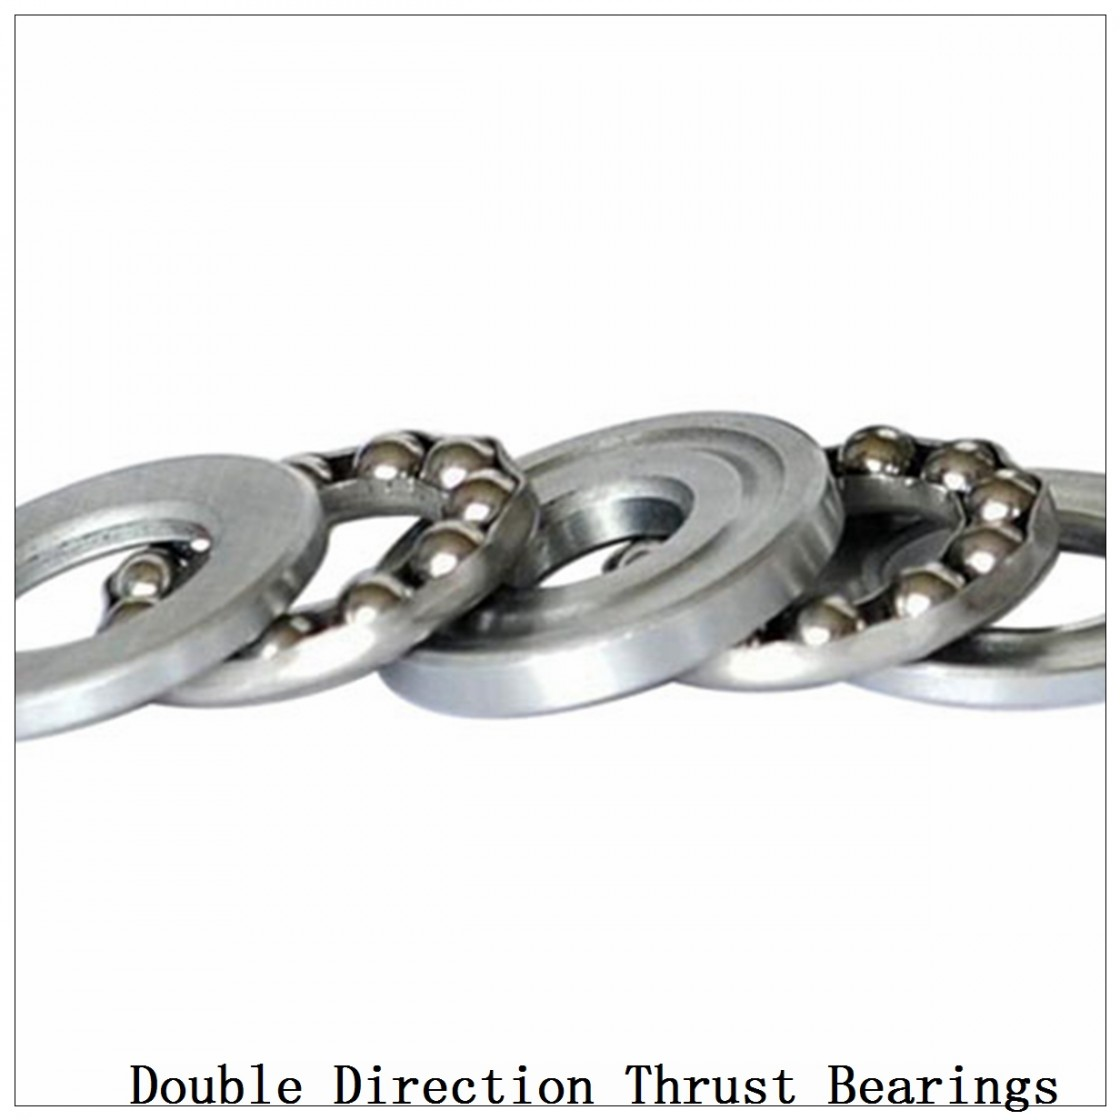 CRTD6104 Double direction thrust bearings